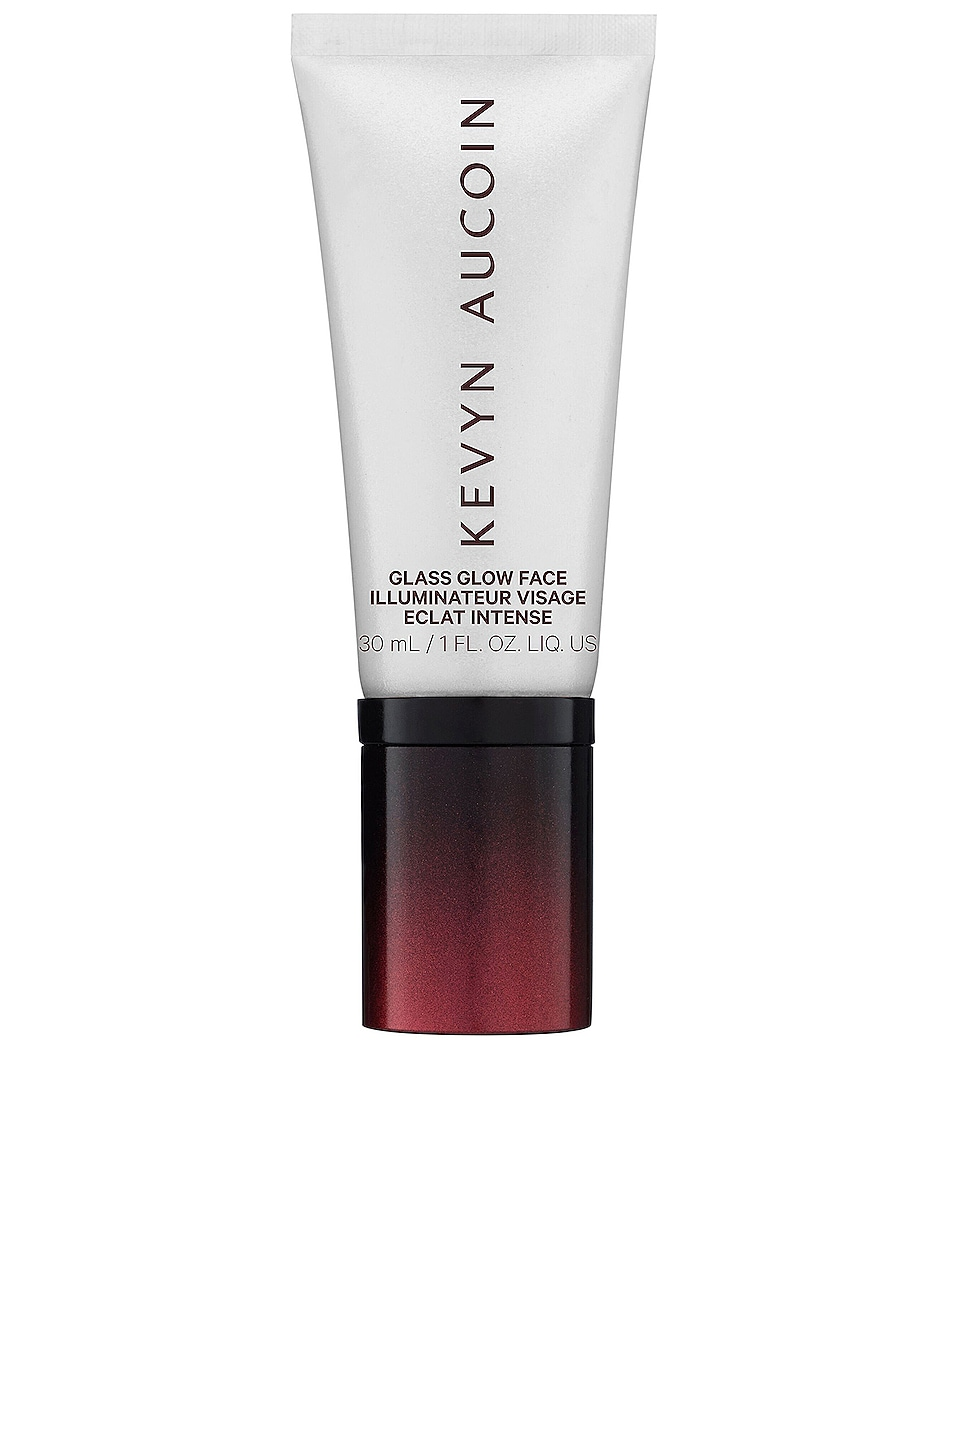 Kevyn Aucoin Glass Glow Face Highlight in Crystal Clear